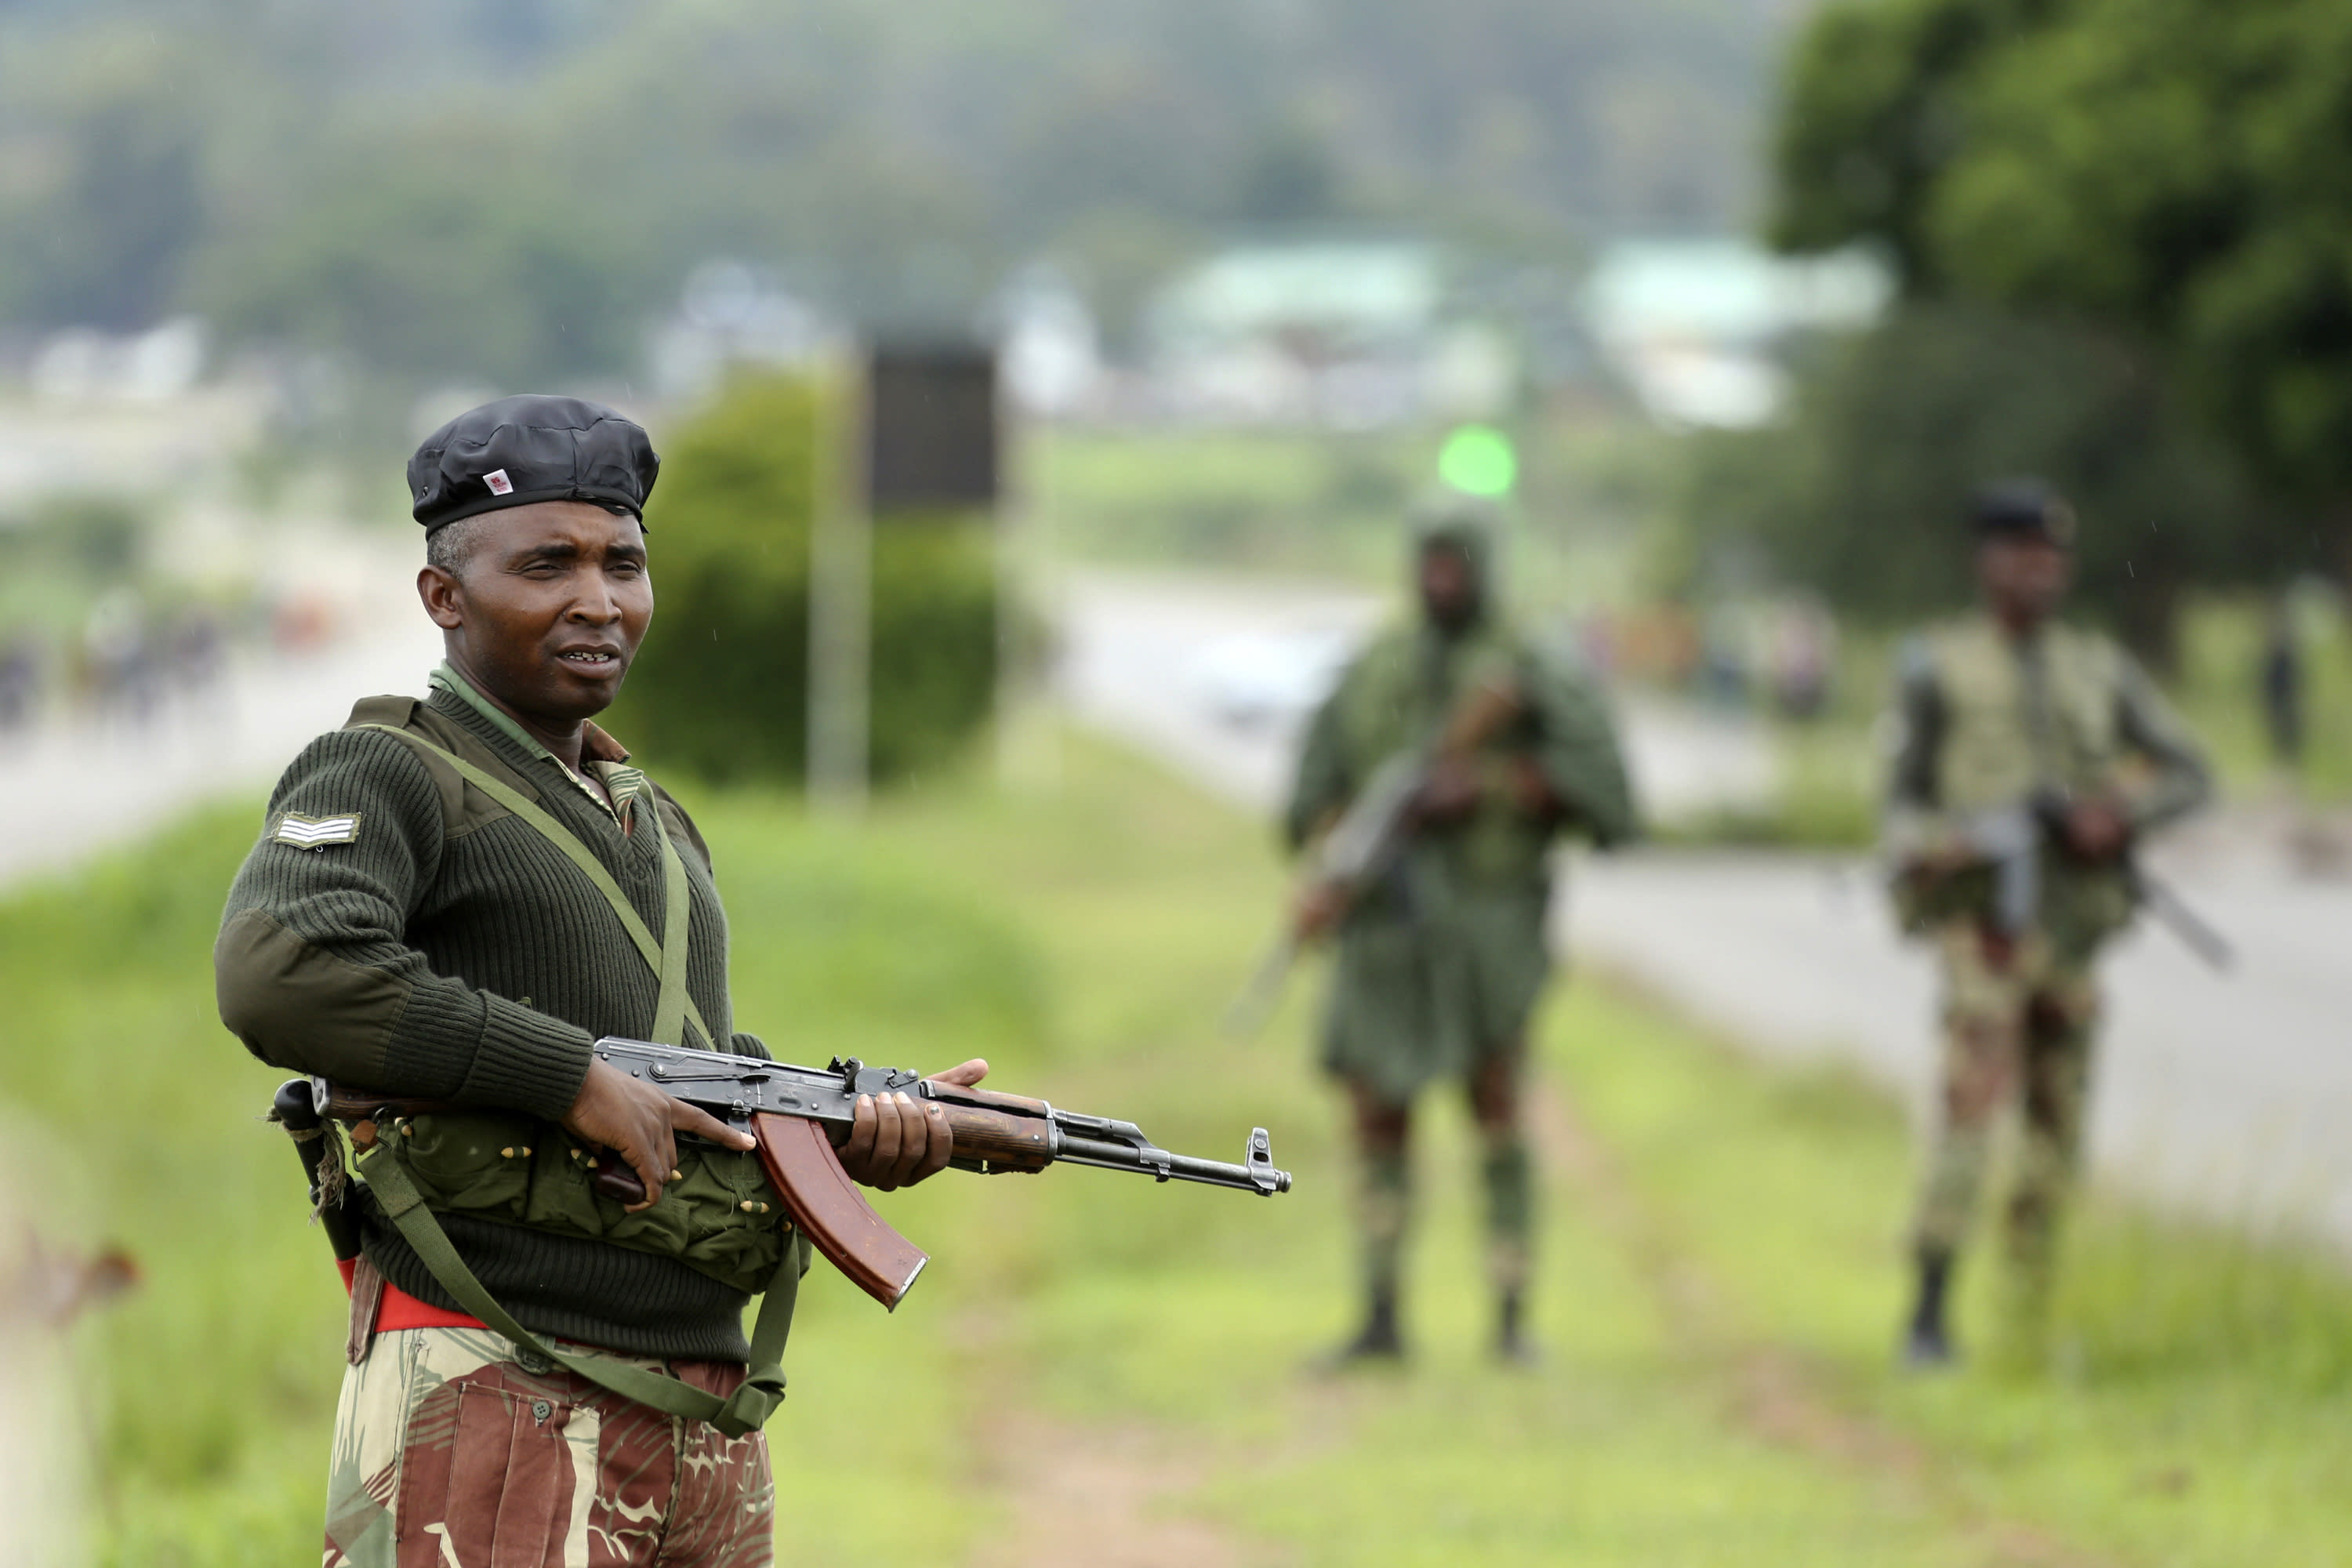 Soldier patrol as protestors gather during a demonstration over the hike in fuel prices in Harare, Zimbabwe, Tuesday, Jan. 15, 2019. A Zimbabwean military helicopter on Tuesday fired tear gas at demonstrators blocking a road and burning tires in the capital on a second day of deadly protests after the government more than doubled the price of fuel in the economically shattered country. (AP Photo/Tsvangirayi Mukwazhi)